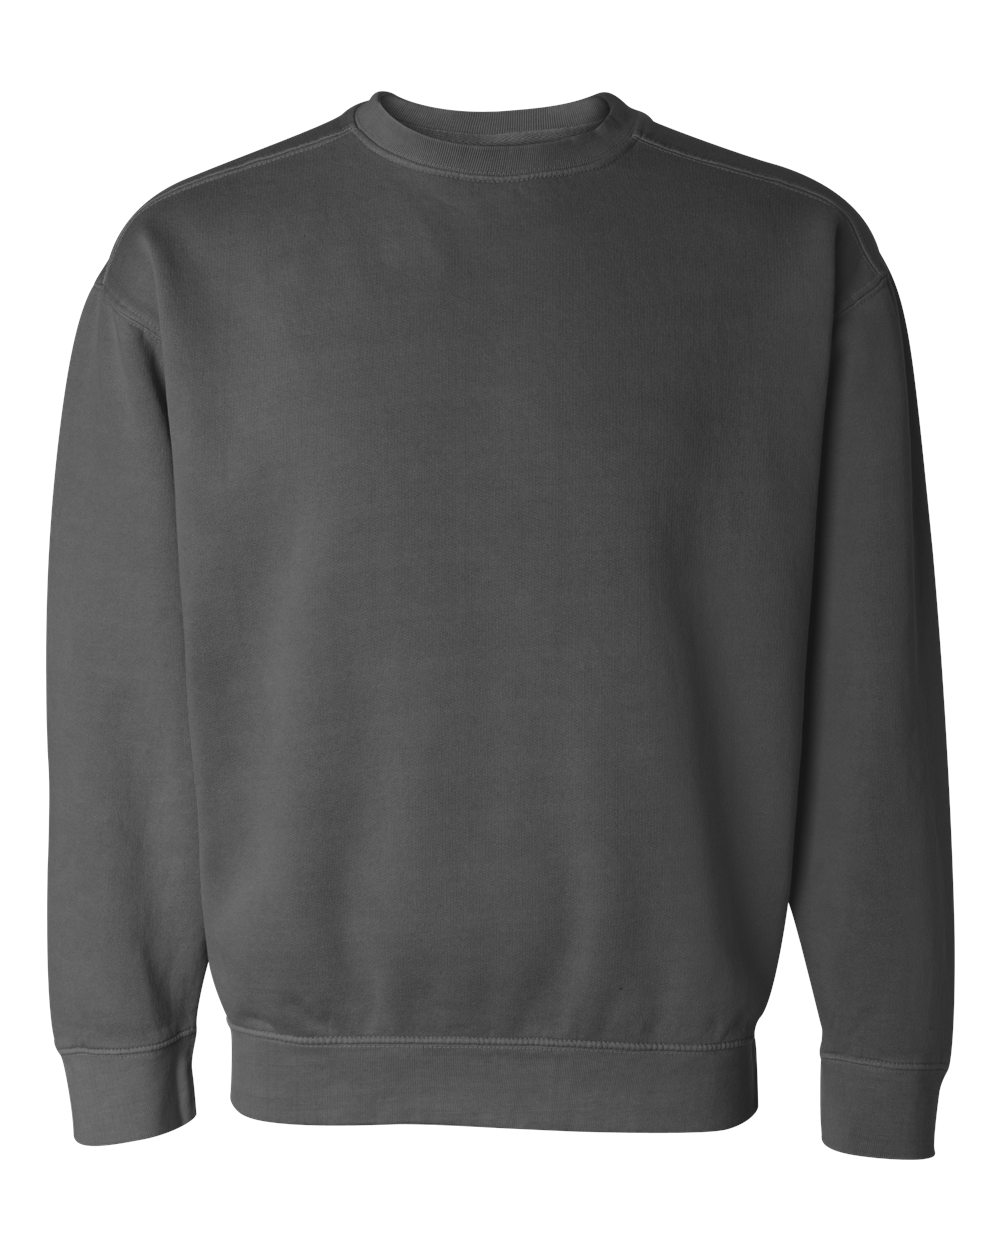 Comfort-Colors-Mens-Garment-Dyed-Ringspun-Crewneck-Sweatshirt-1566-up-to-3XL miniature 48